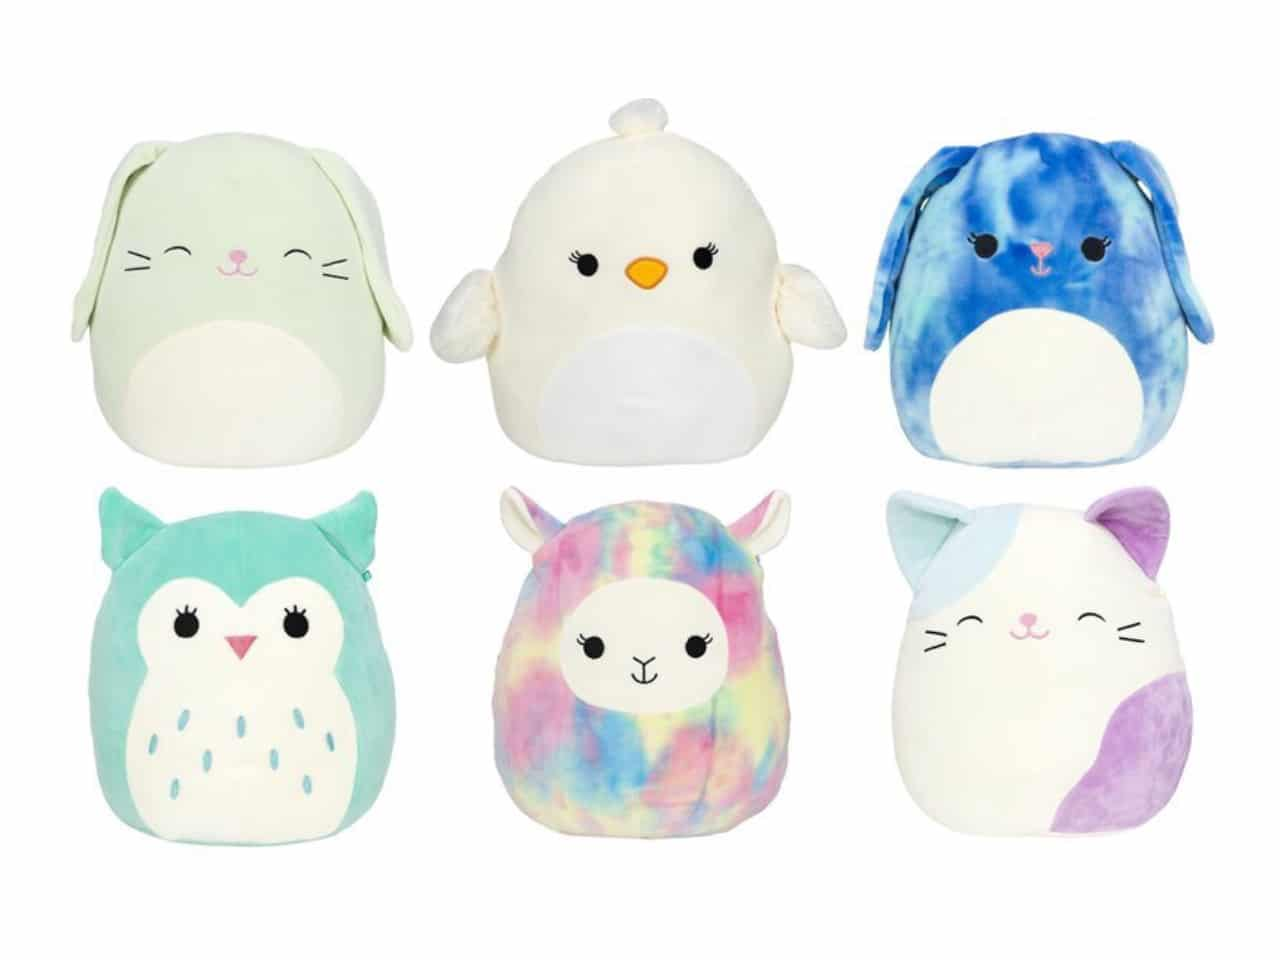 Plush Easter-themed round toys in shape of bunnies, chicks, lambs, owls and kitties